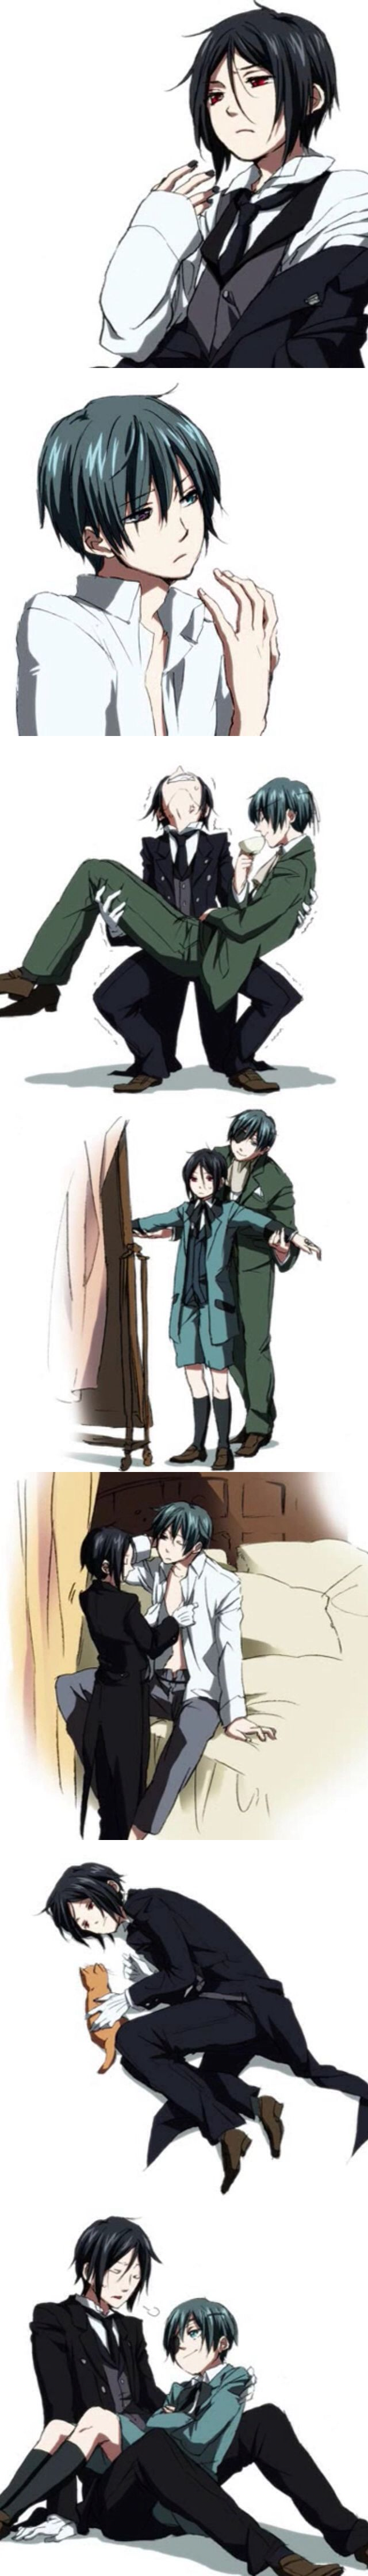 If Ciel was older than Sebastian (him trying to lift Ciel up! XD )